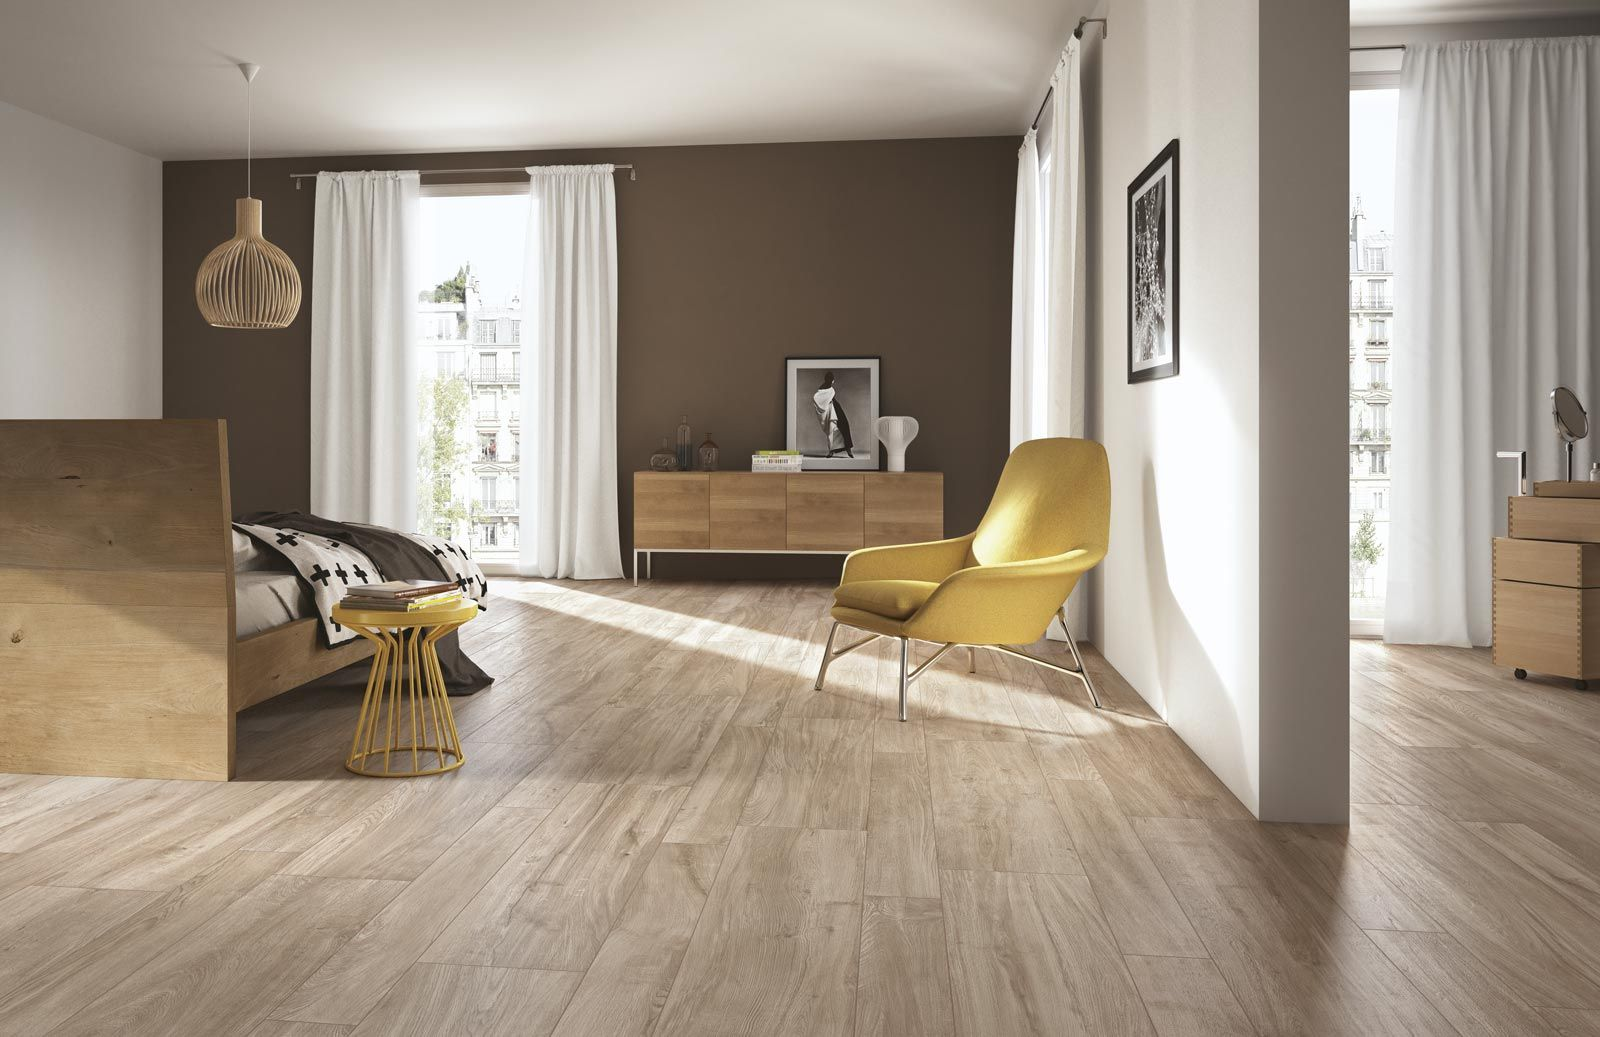 Ragno #woodliving Rovere Tortora 20X120 Cm R40D  #porcelain Extraordinary Best Tiles Design For Living Room Review